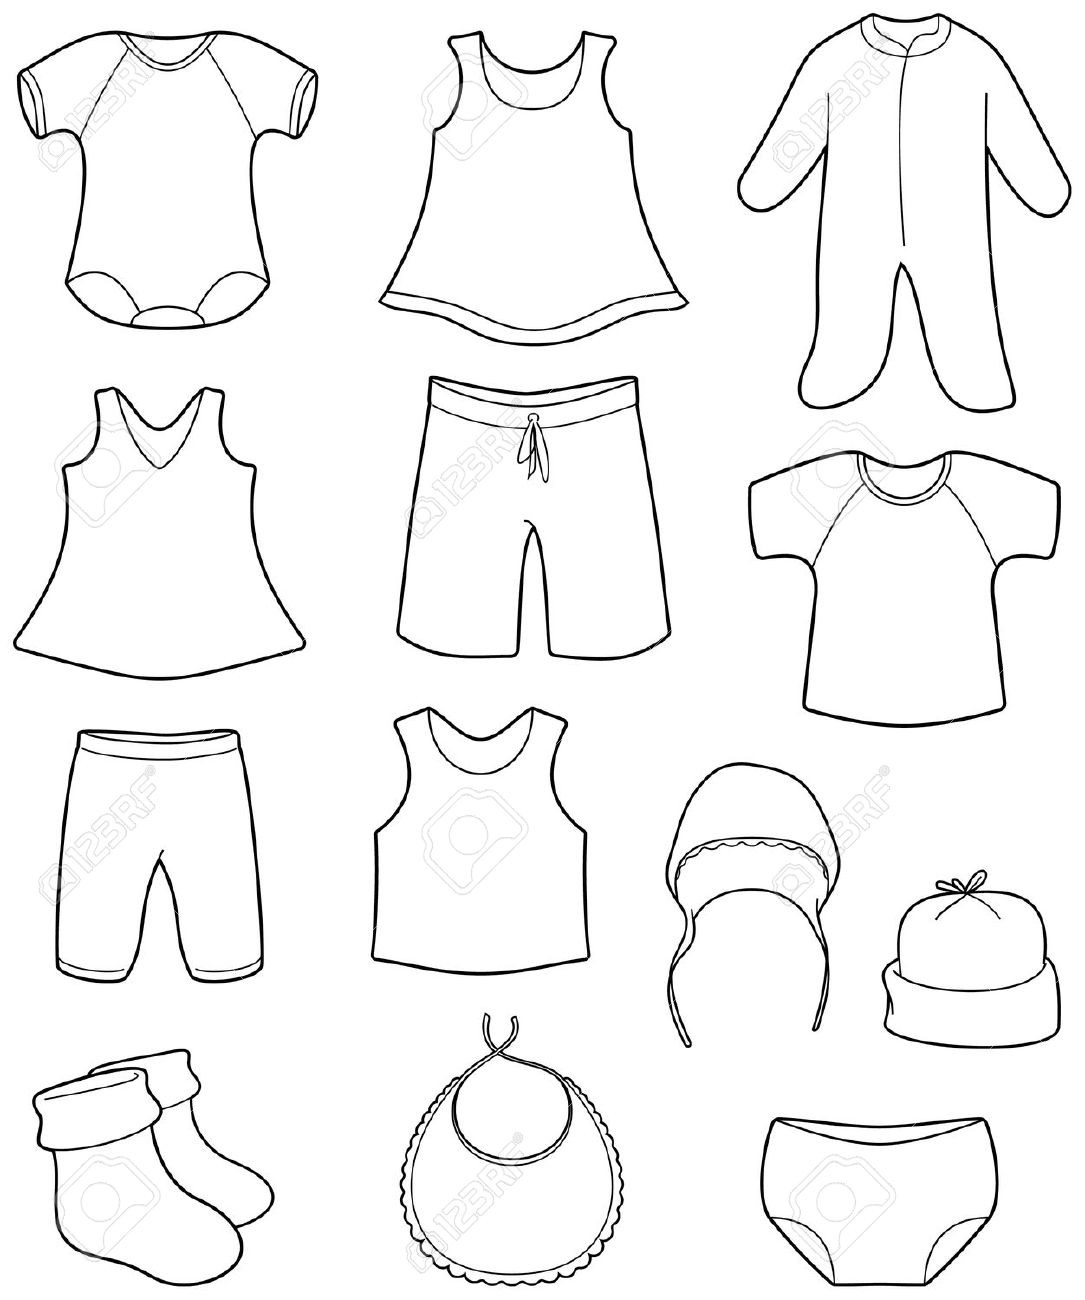 Printable Coloring Pages For Girls With Shirts  Children s clothing clipart Clipground